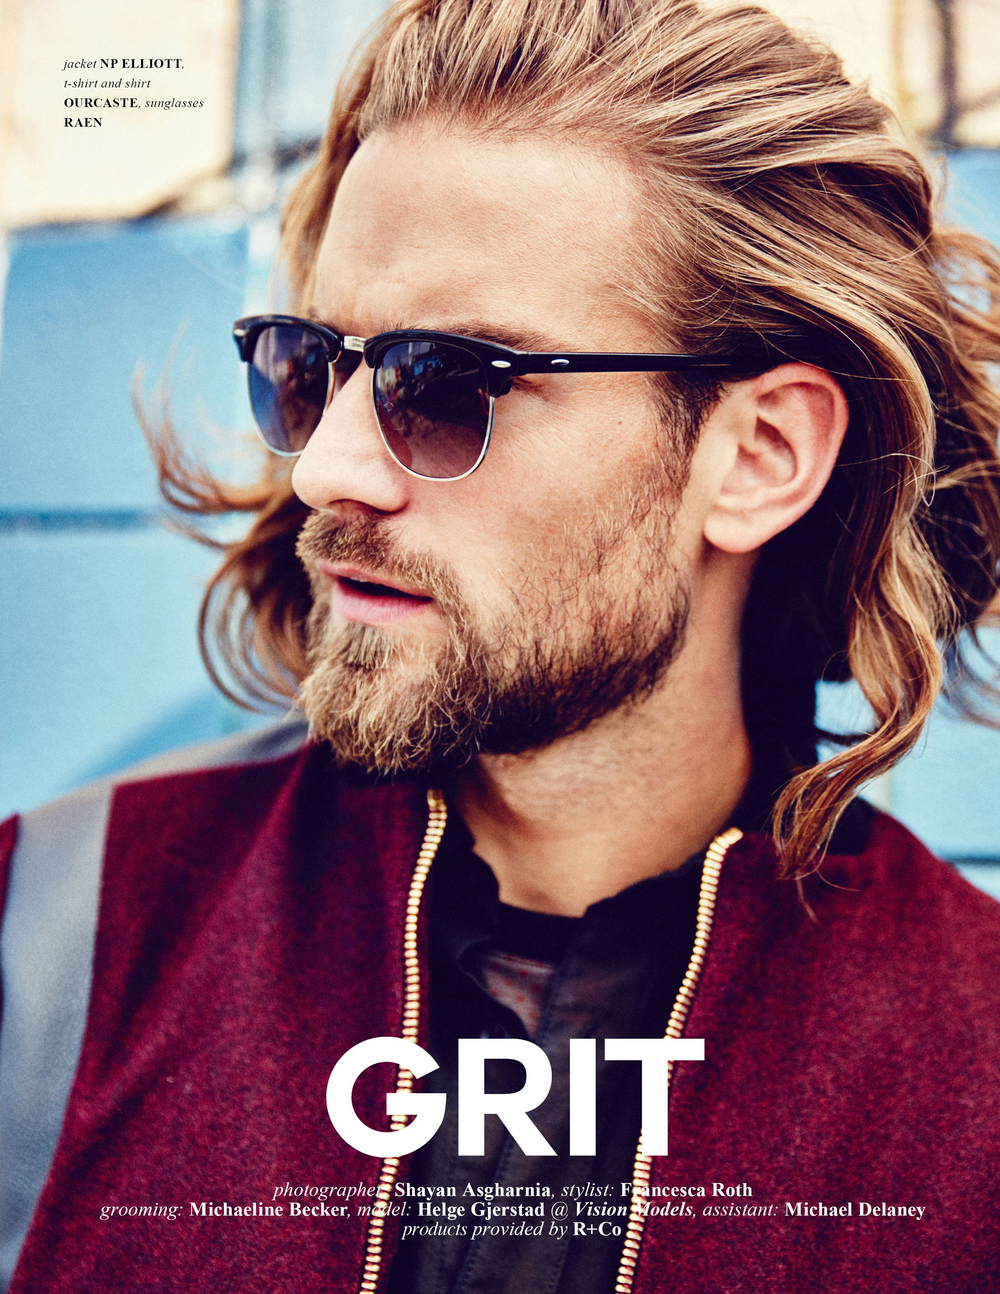 Grooming for Helge of Vision LA // Jute Magazine